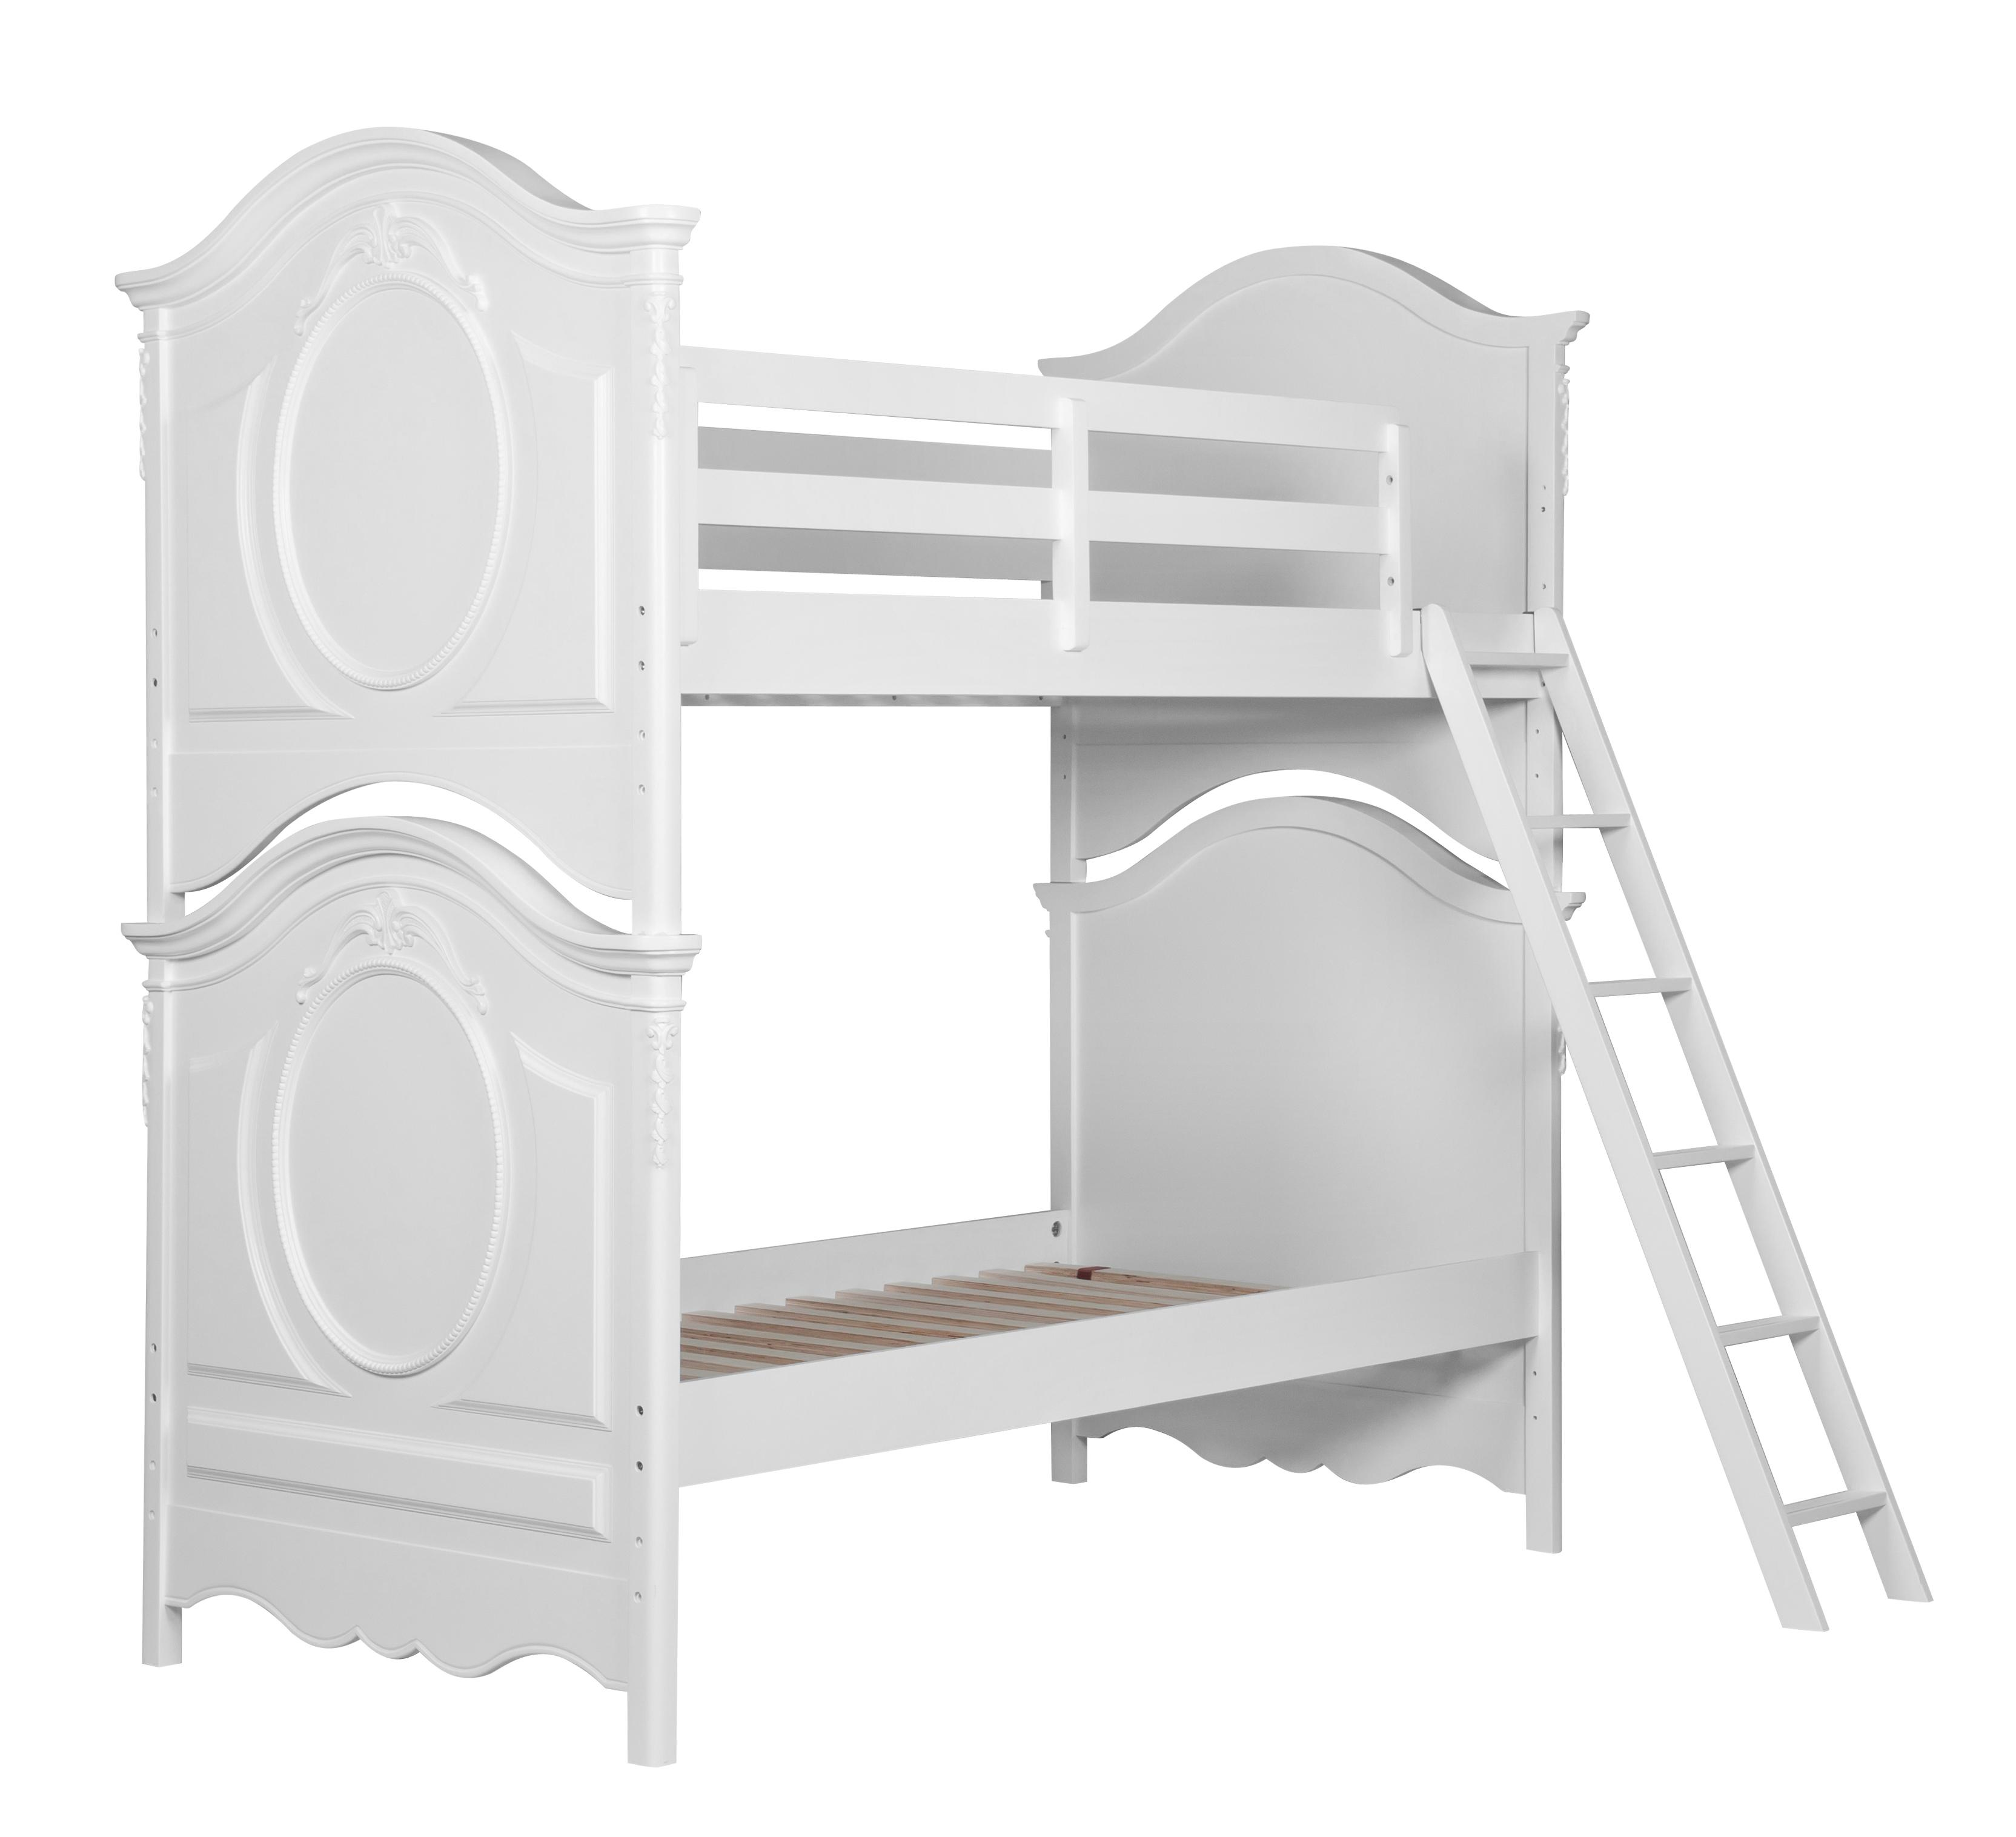 Twin bed top view - Samuel Lawrence Sweetheart Youth Twin Twin Bunk Bed Item Number 8470 730